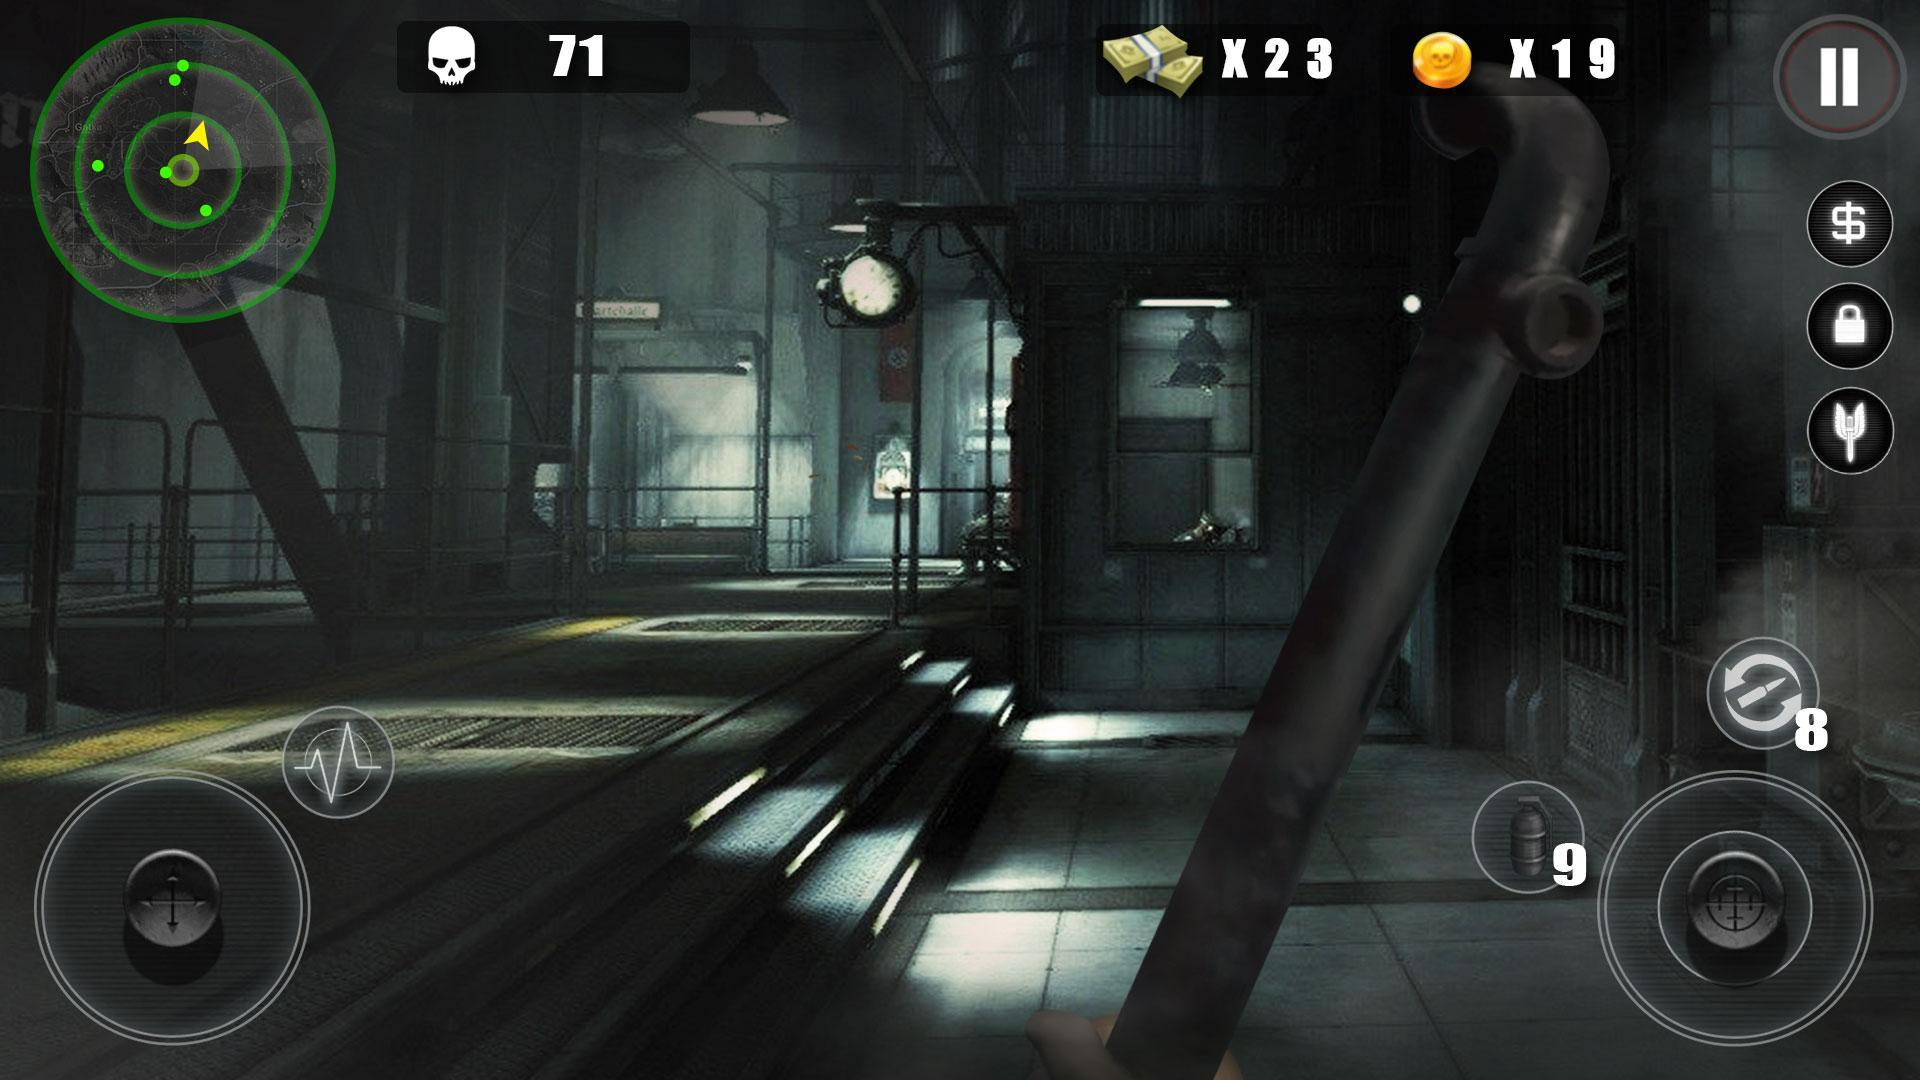 Zombie Hitman for Android - APK Download